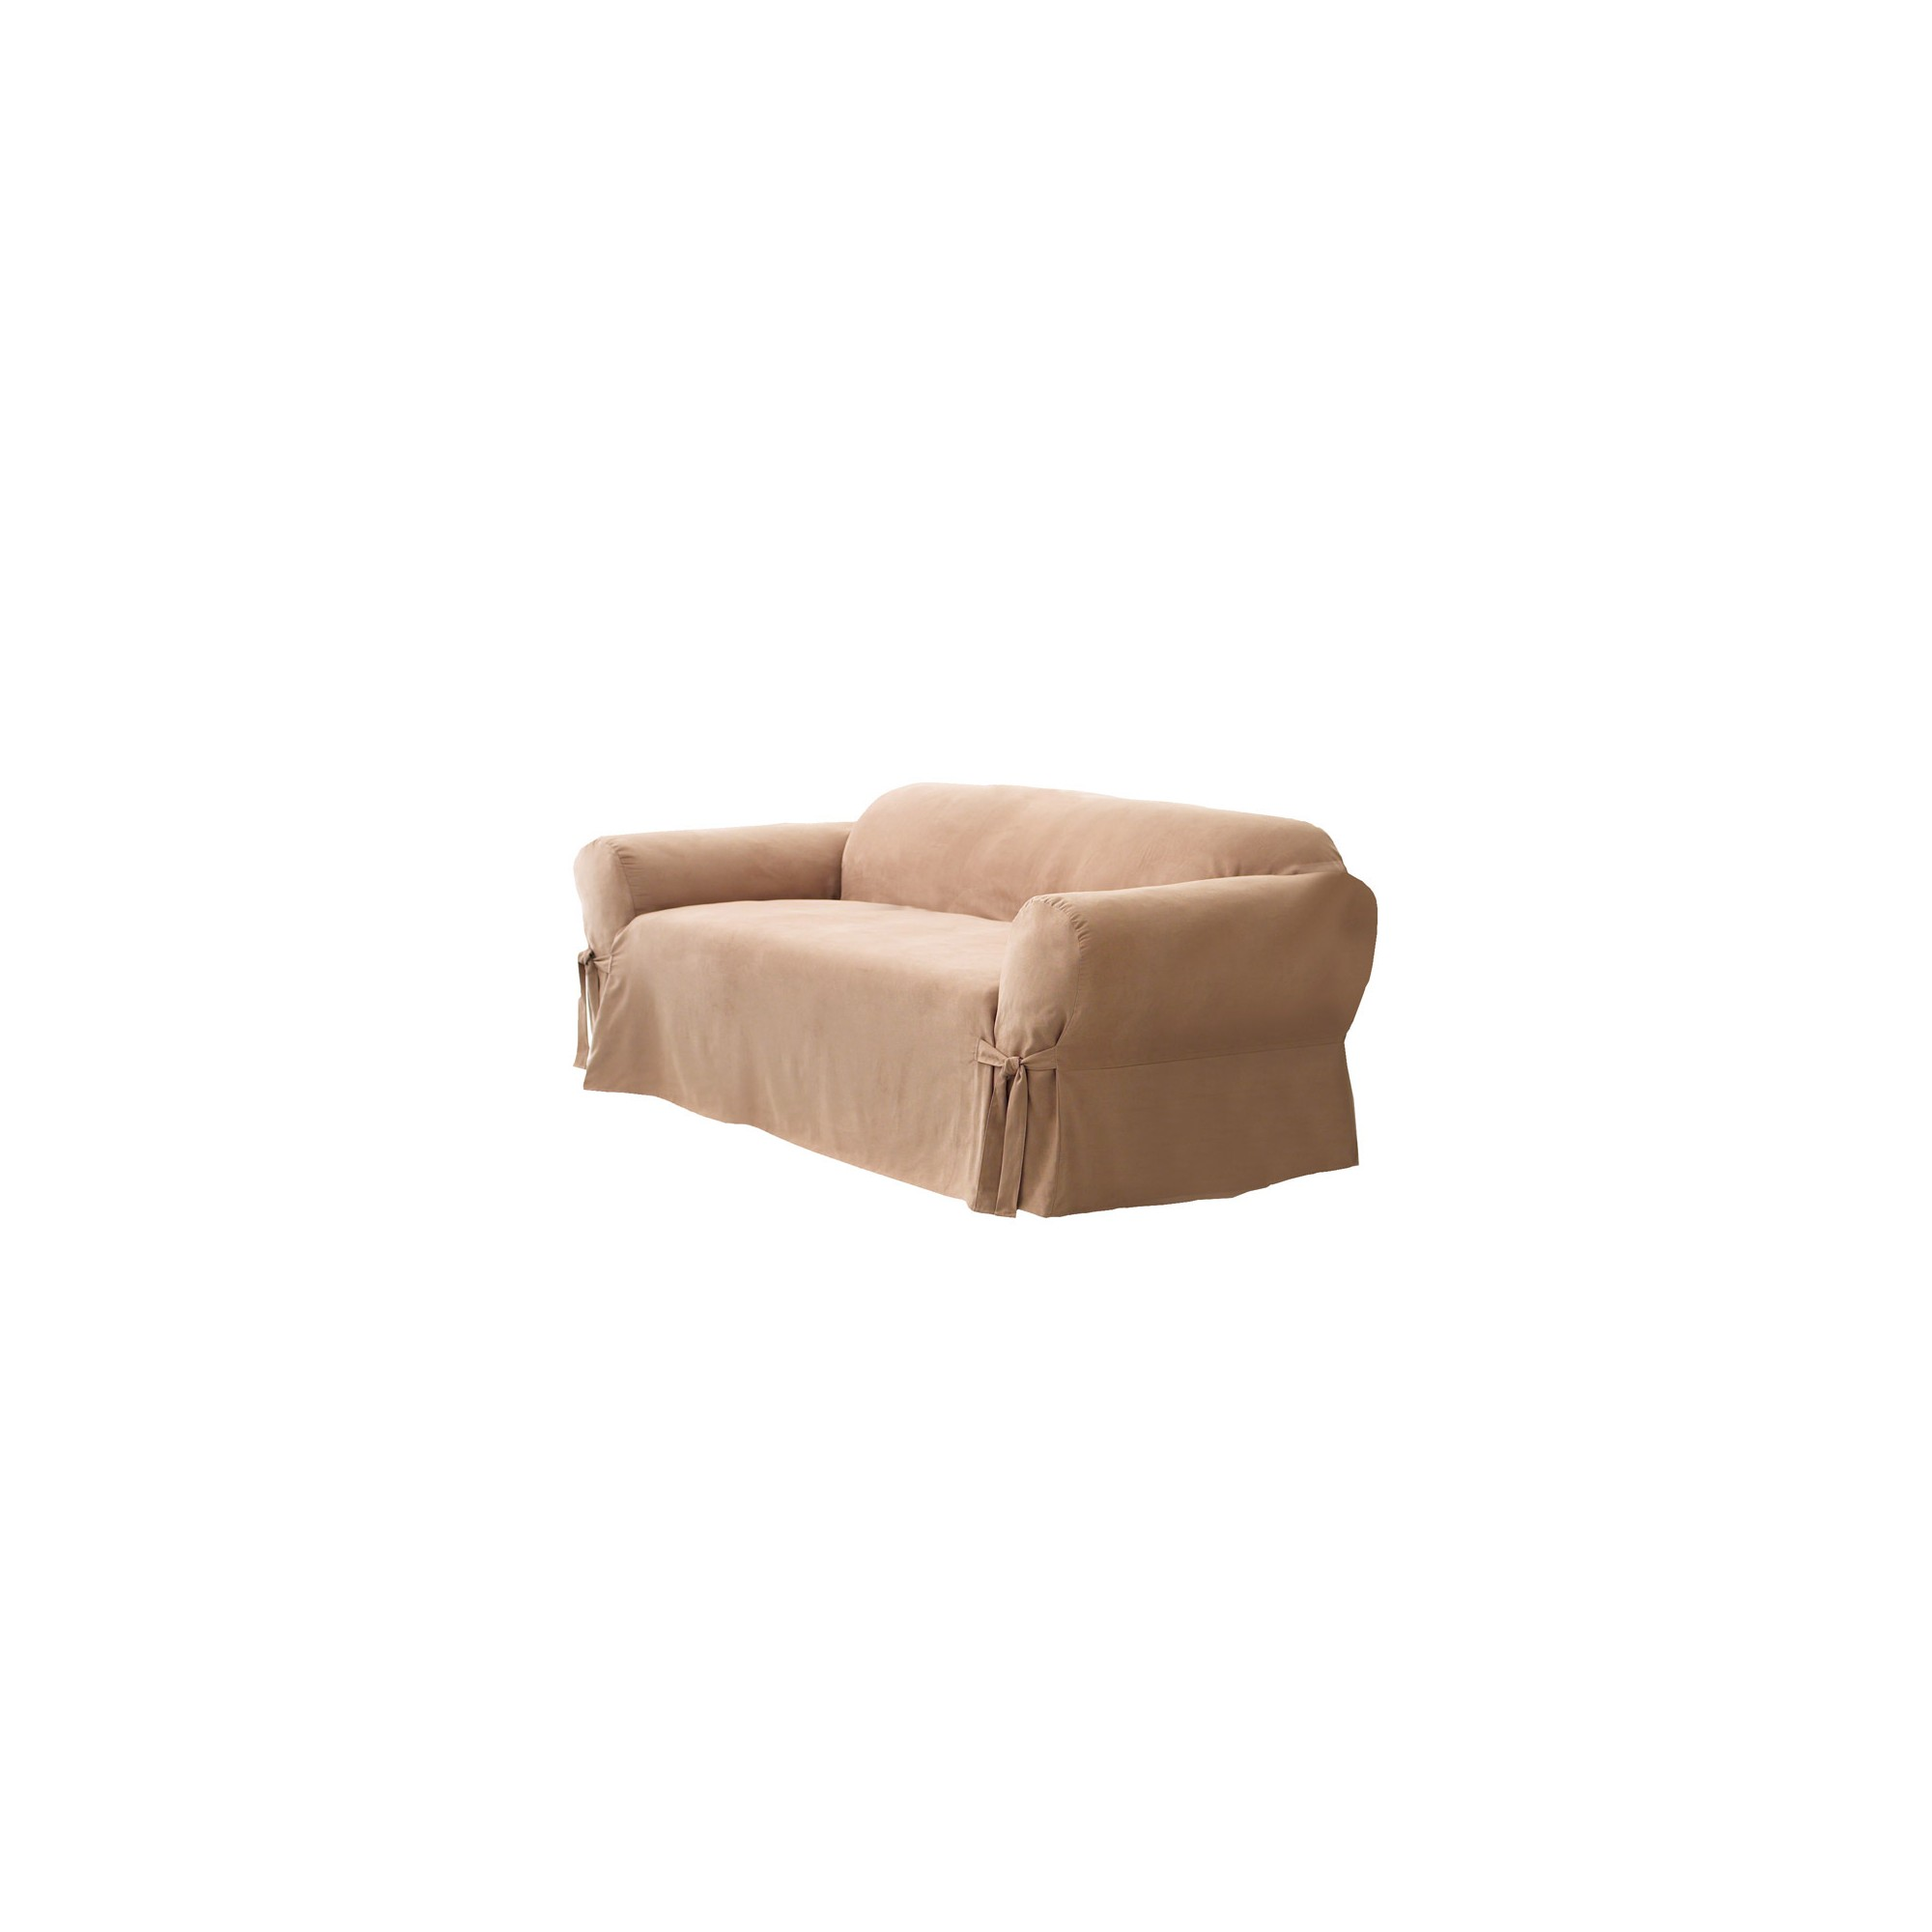 Soft Suede Loveseat Slipcover Sable - Sure Fit